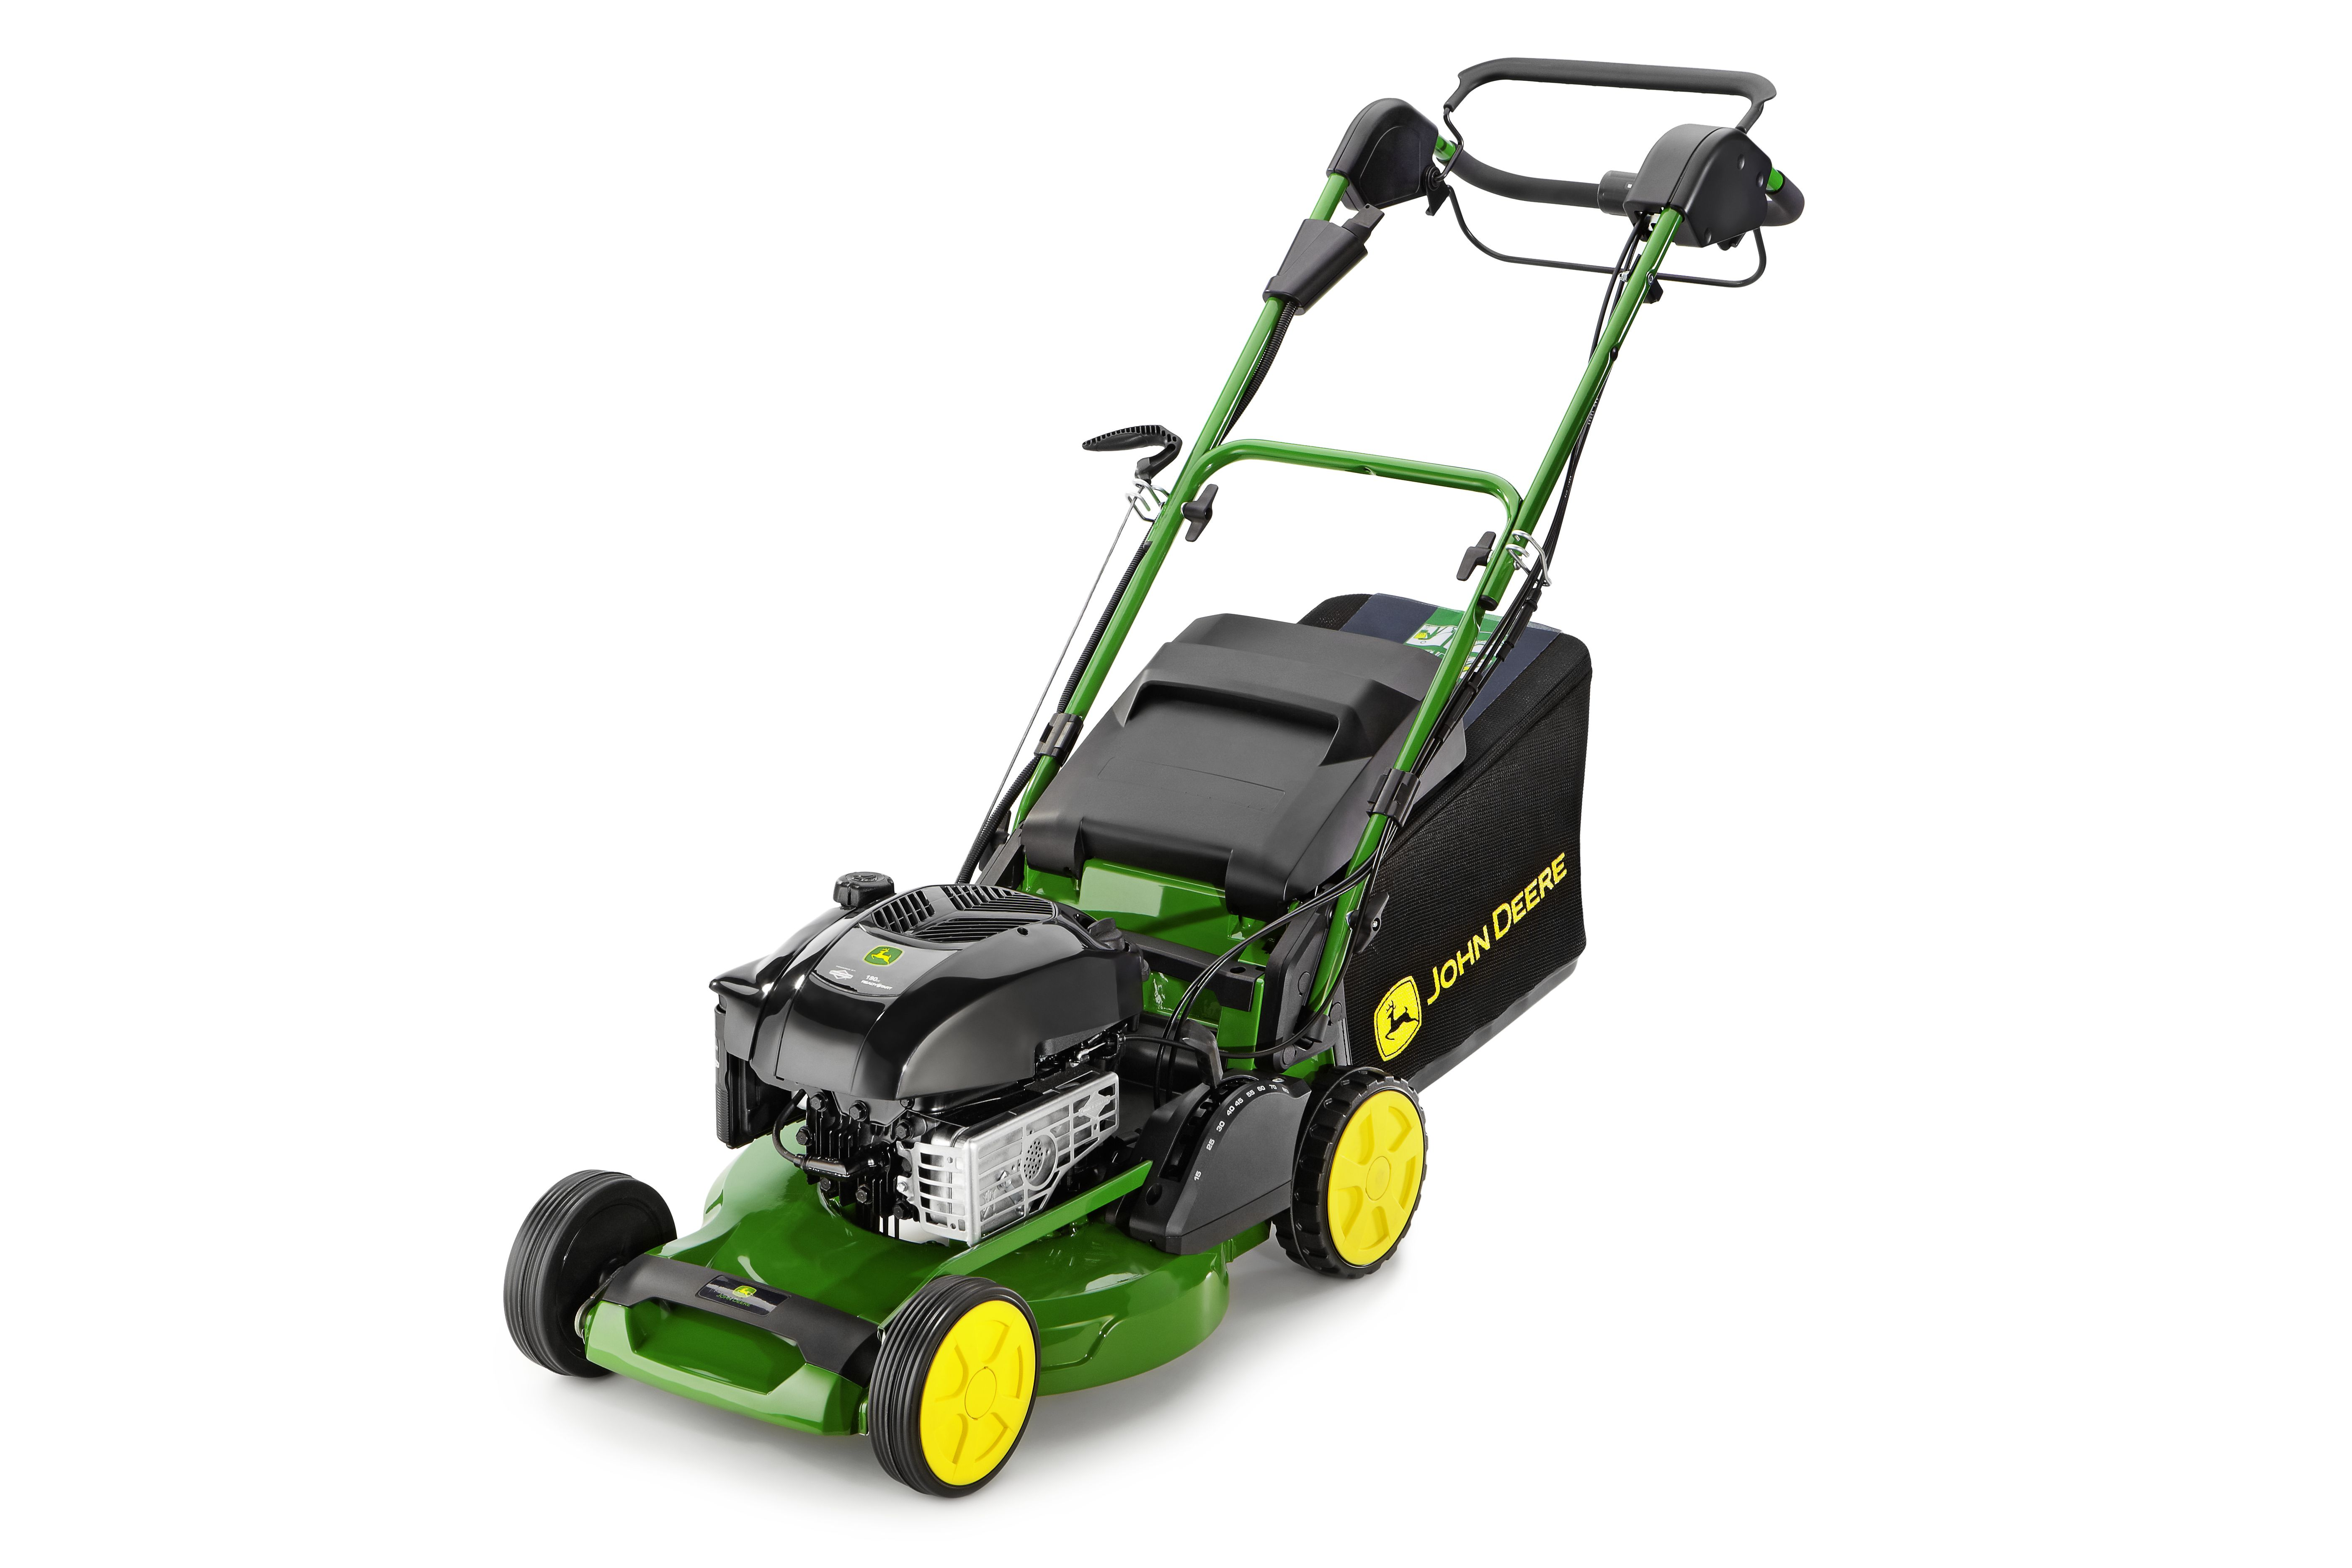 benefits of mobile lawn mower repair greg 39 s small engine. Black Bedroom Furniture Sets. Home Design Ideas